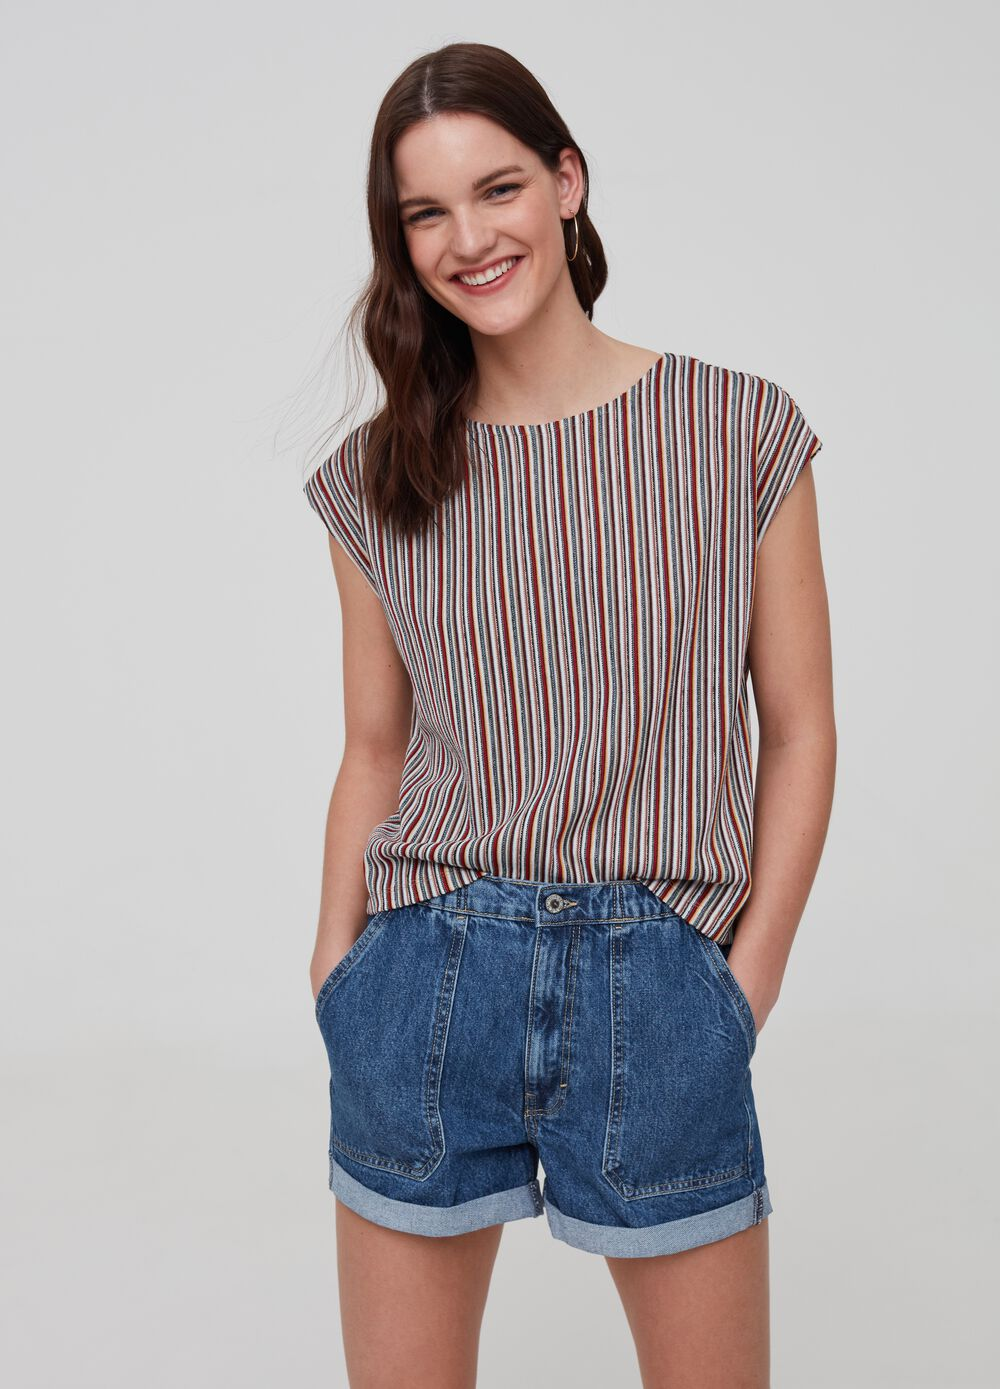 Patterned blouse with cap sleeves